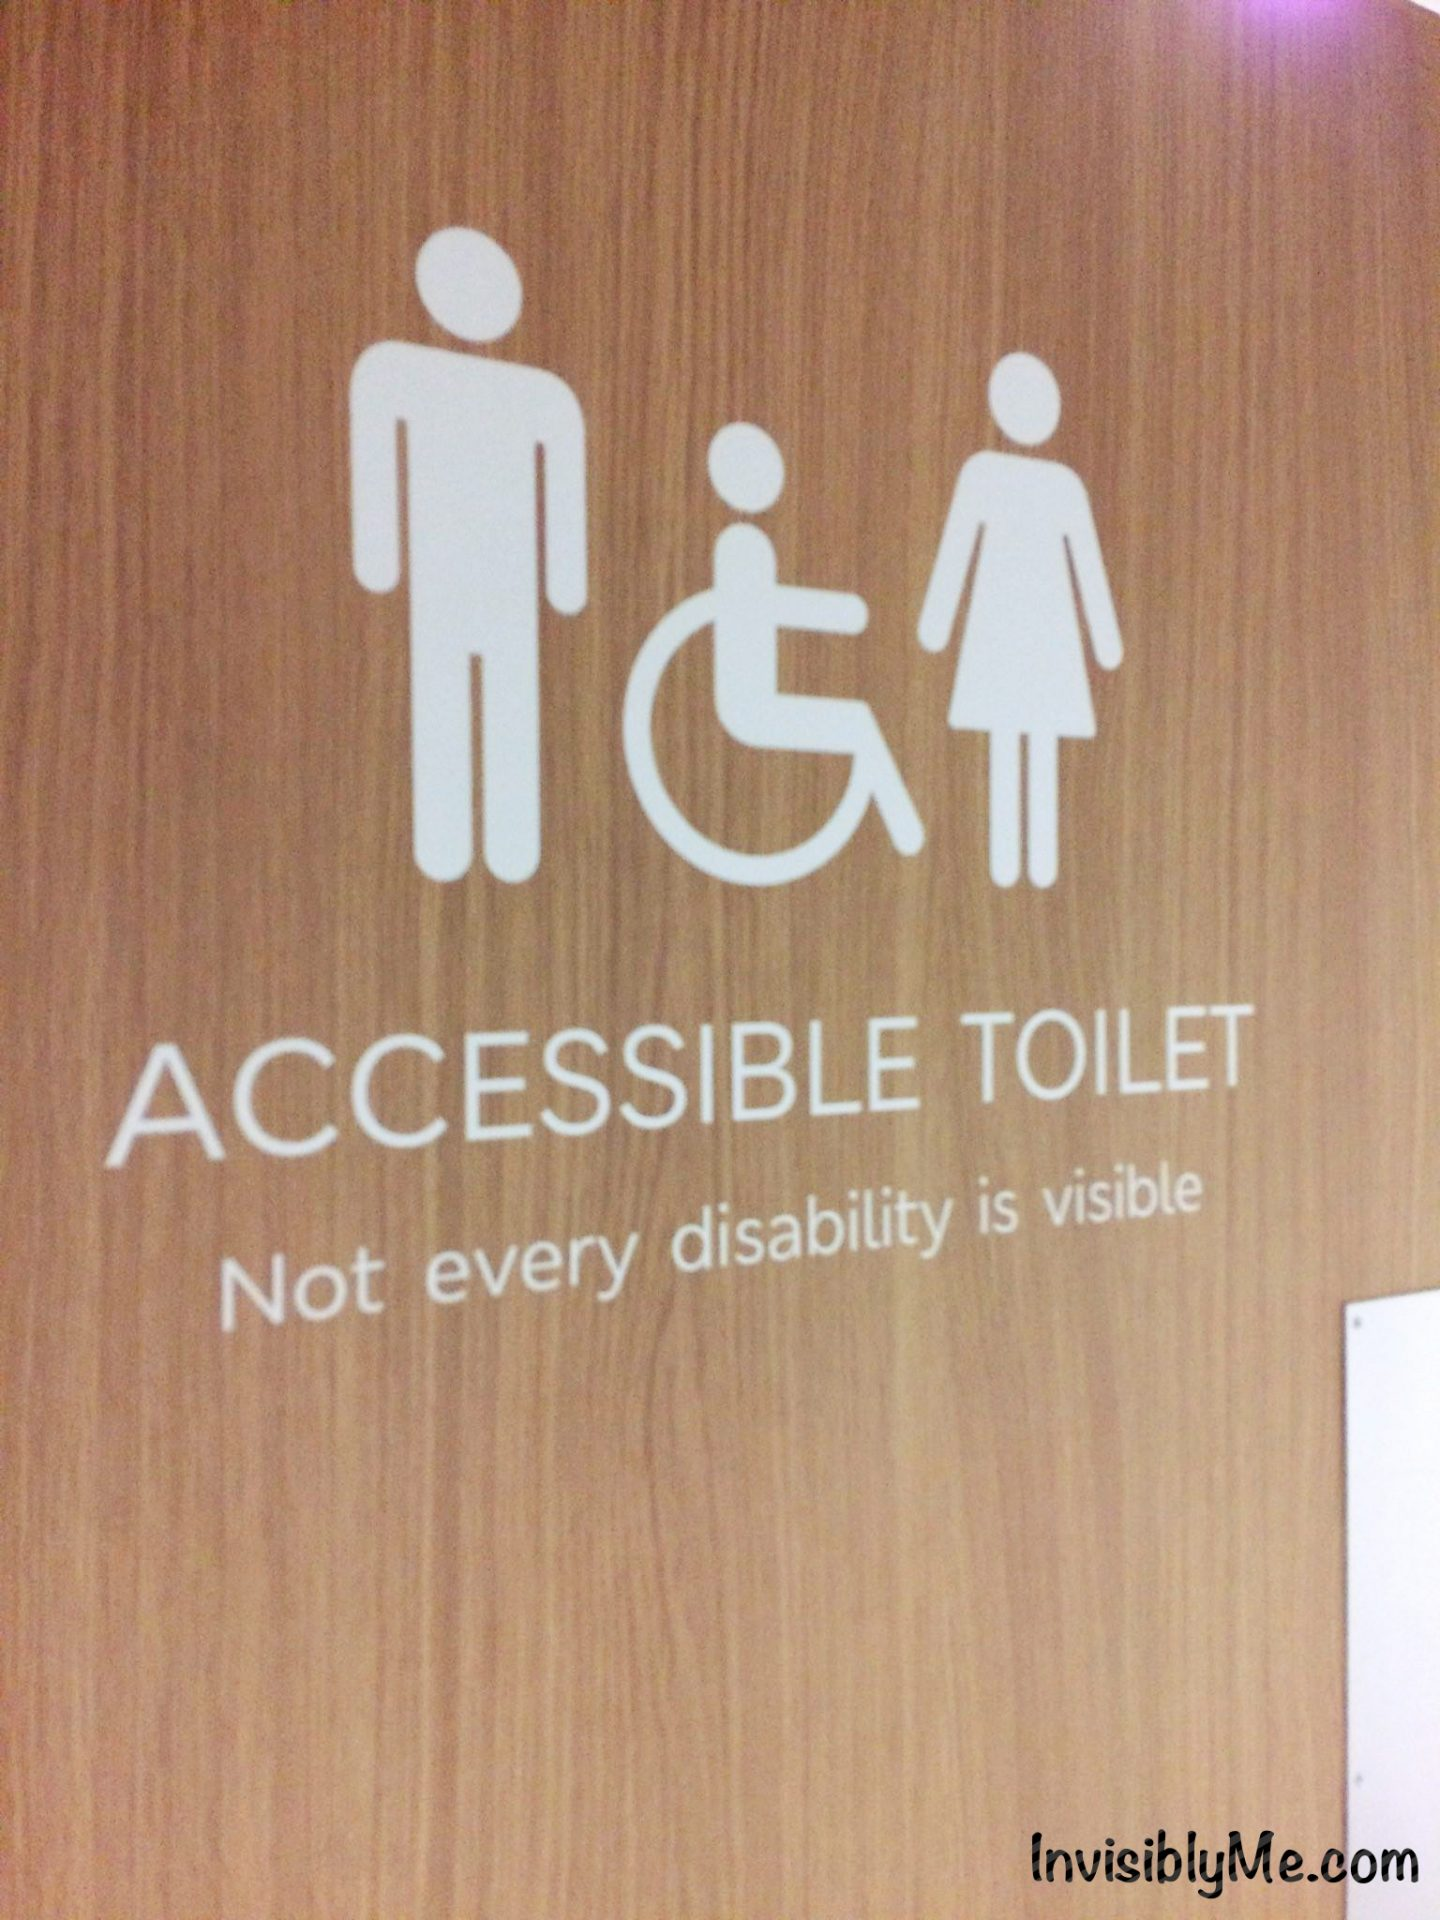 It's Not Just Any Toilet, It's An M&S Toilet!